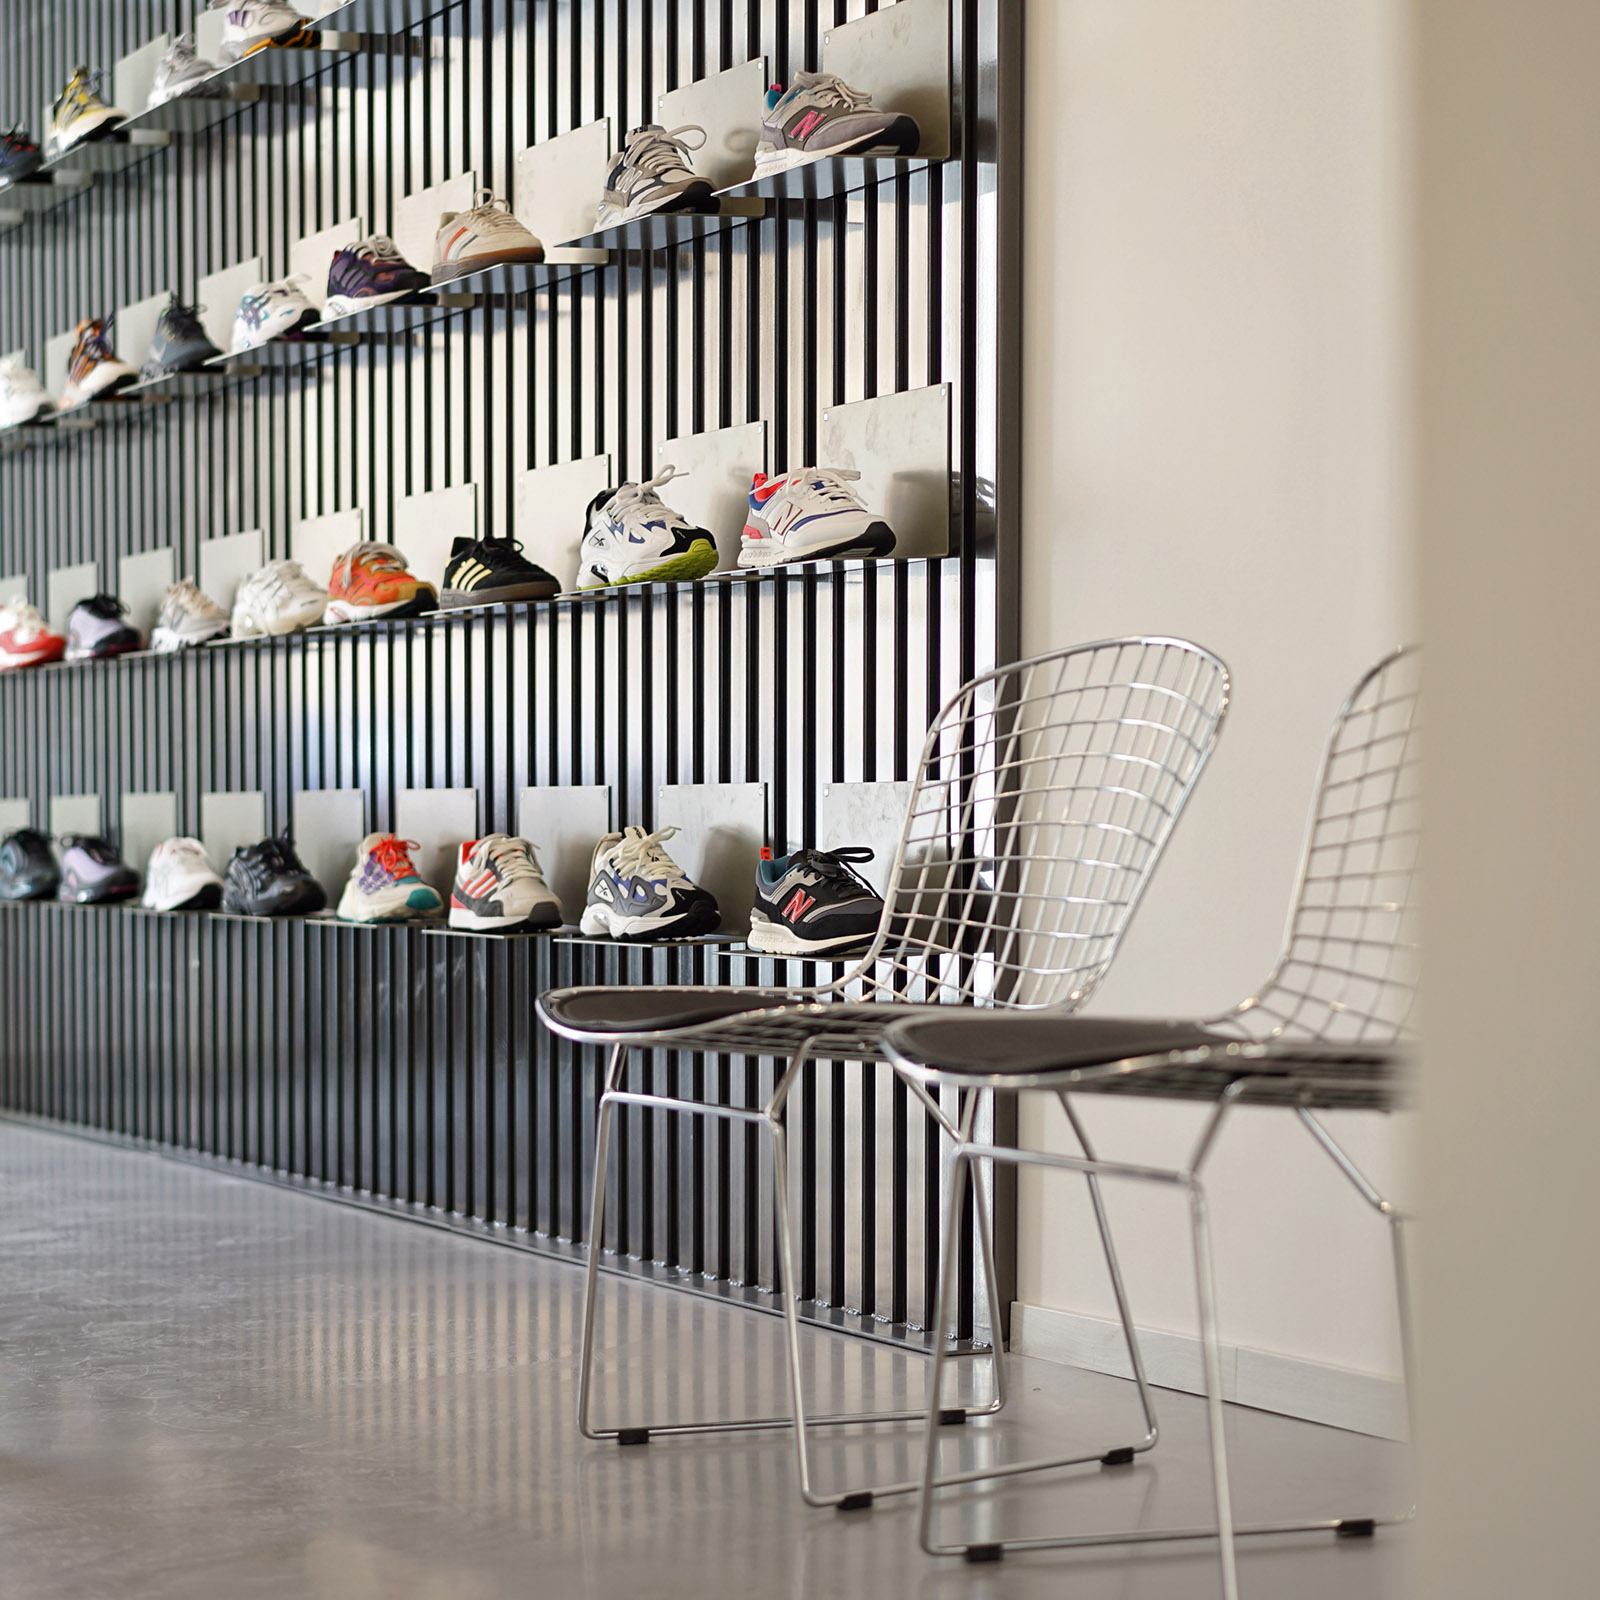 Boutique Sneakers | NOVOID KICKS (Aix-en-Provence)